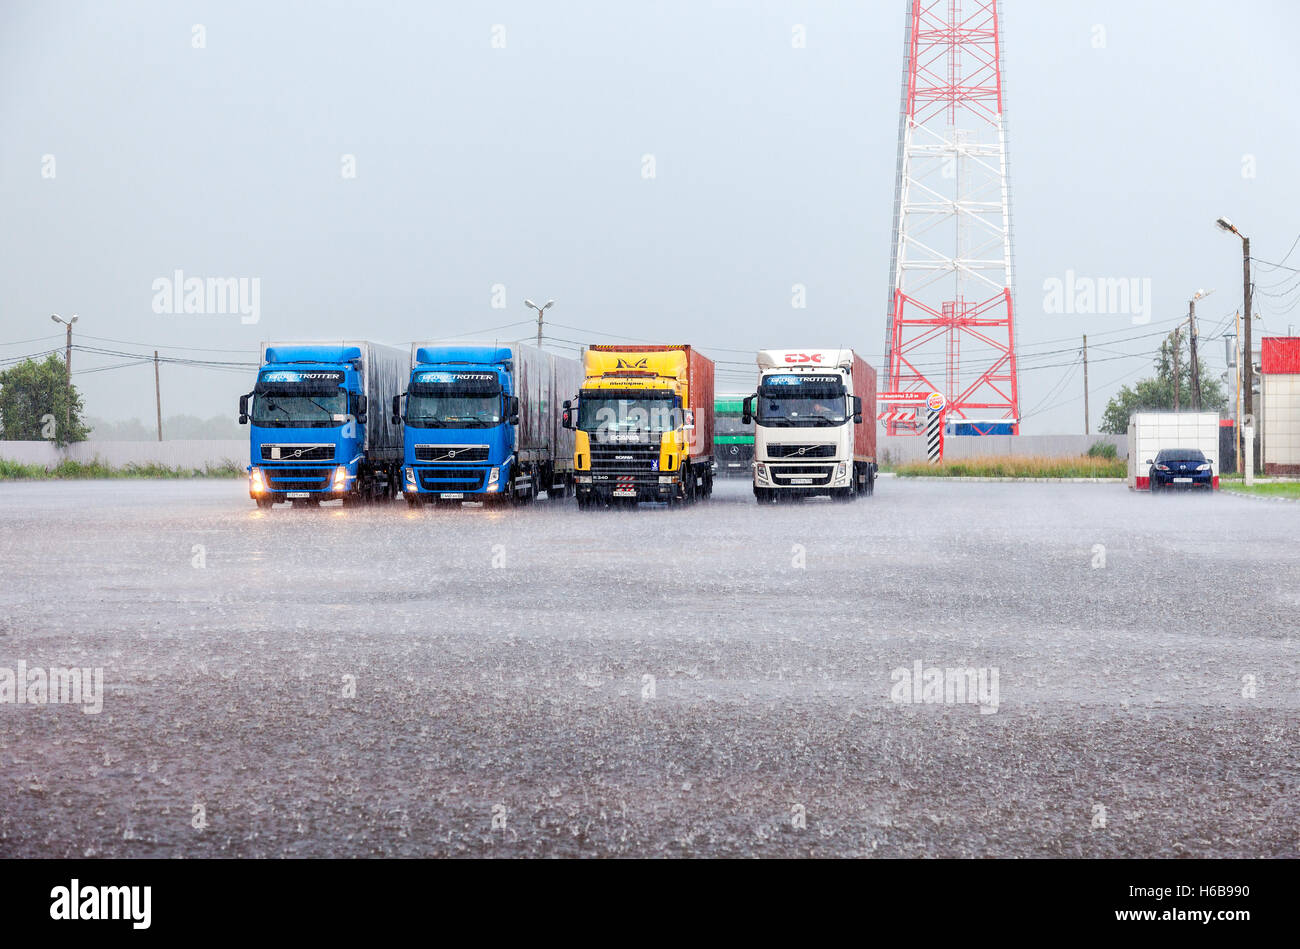 Truck trailers parked up at the parking lot in heavy rain - Stock Image